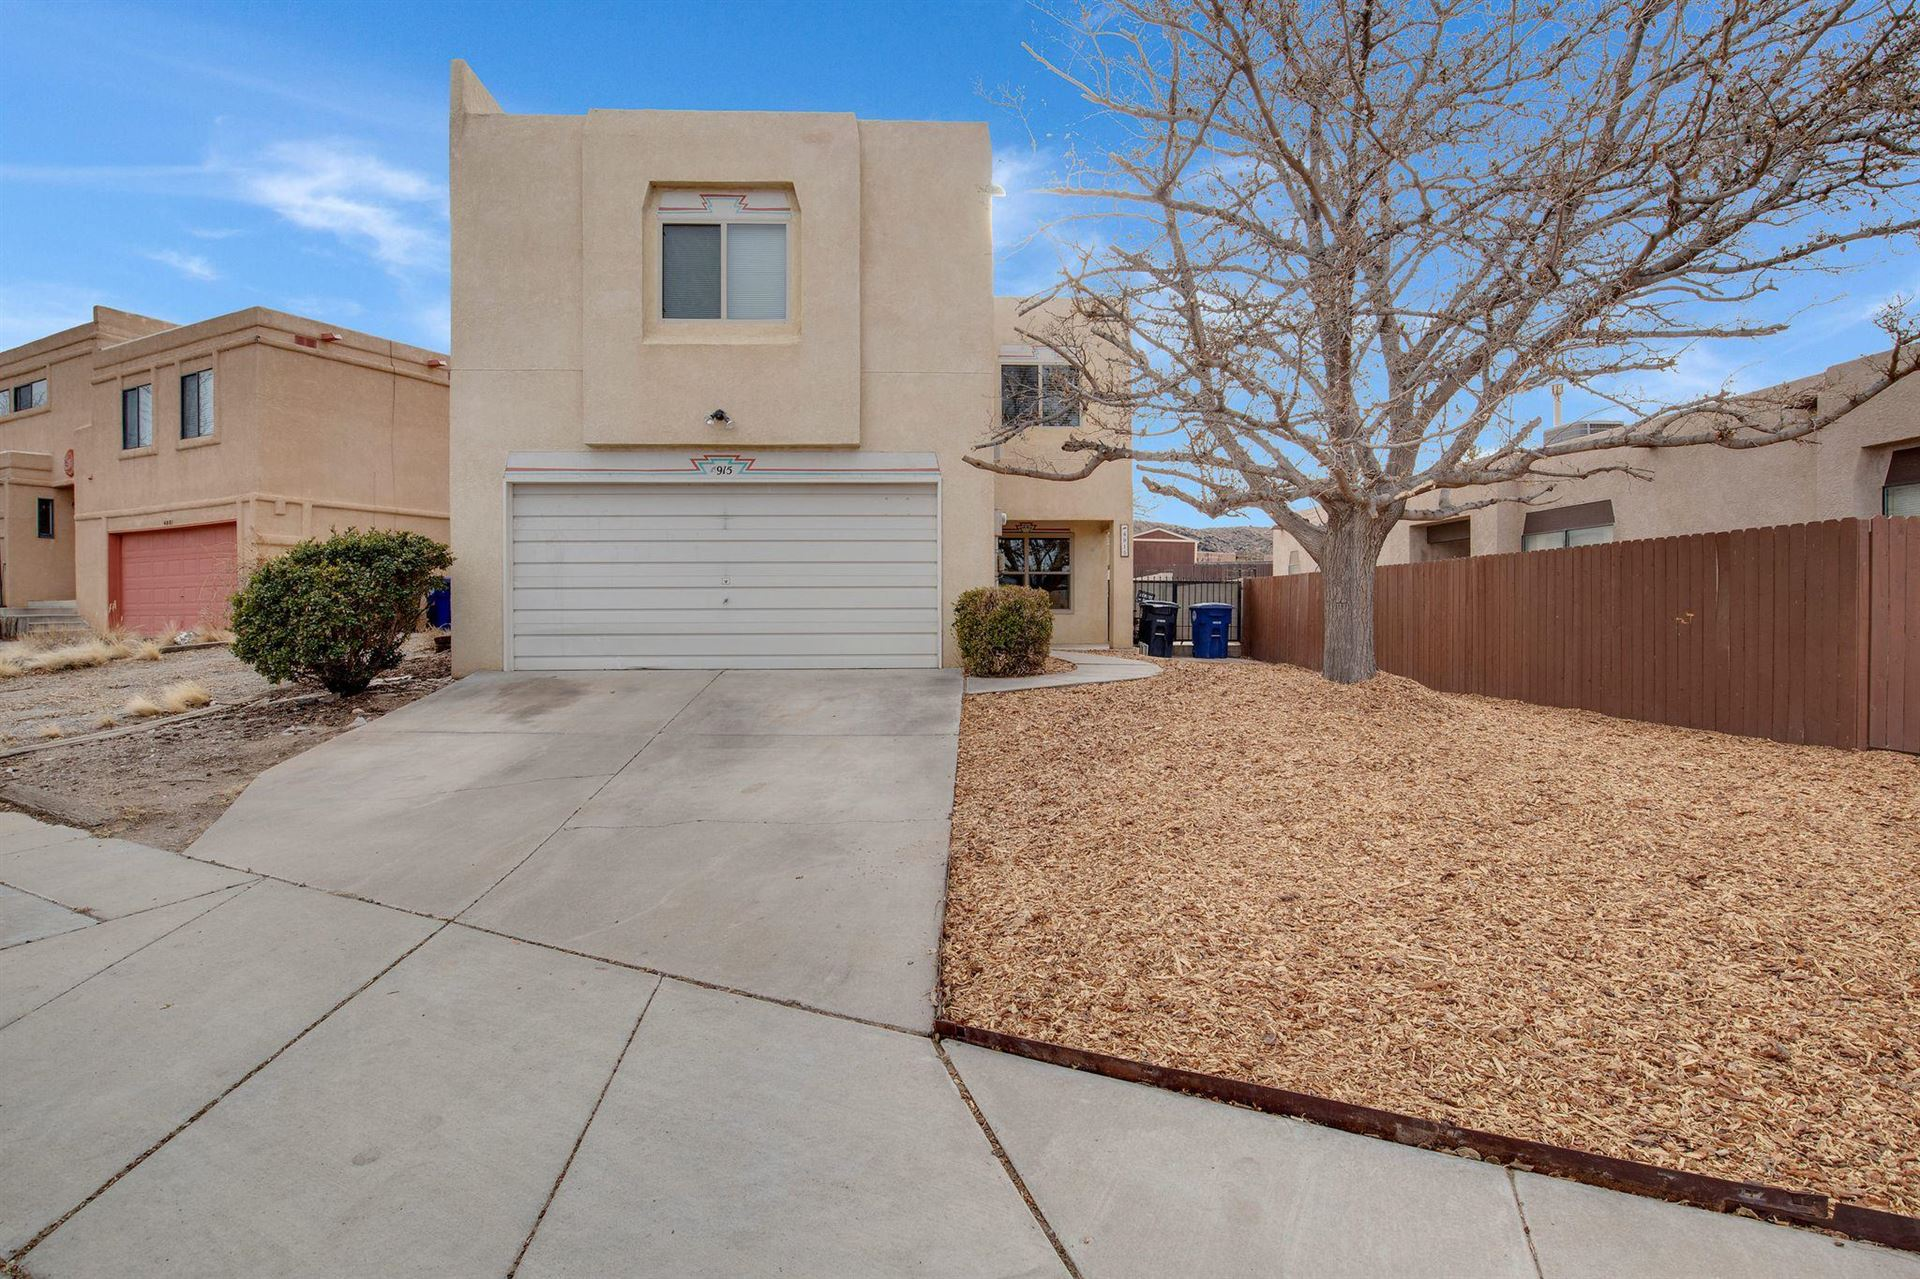 4915 BUTTE Place NW, Albuquerque, NM 87120 - MLS#: 985344